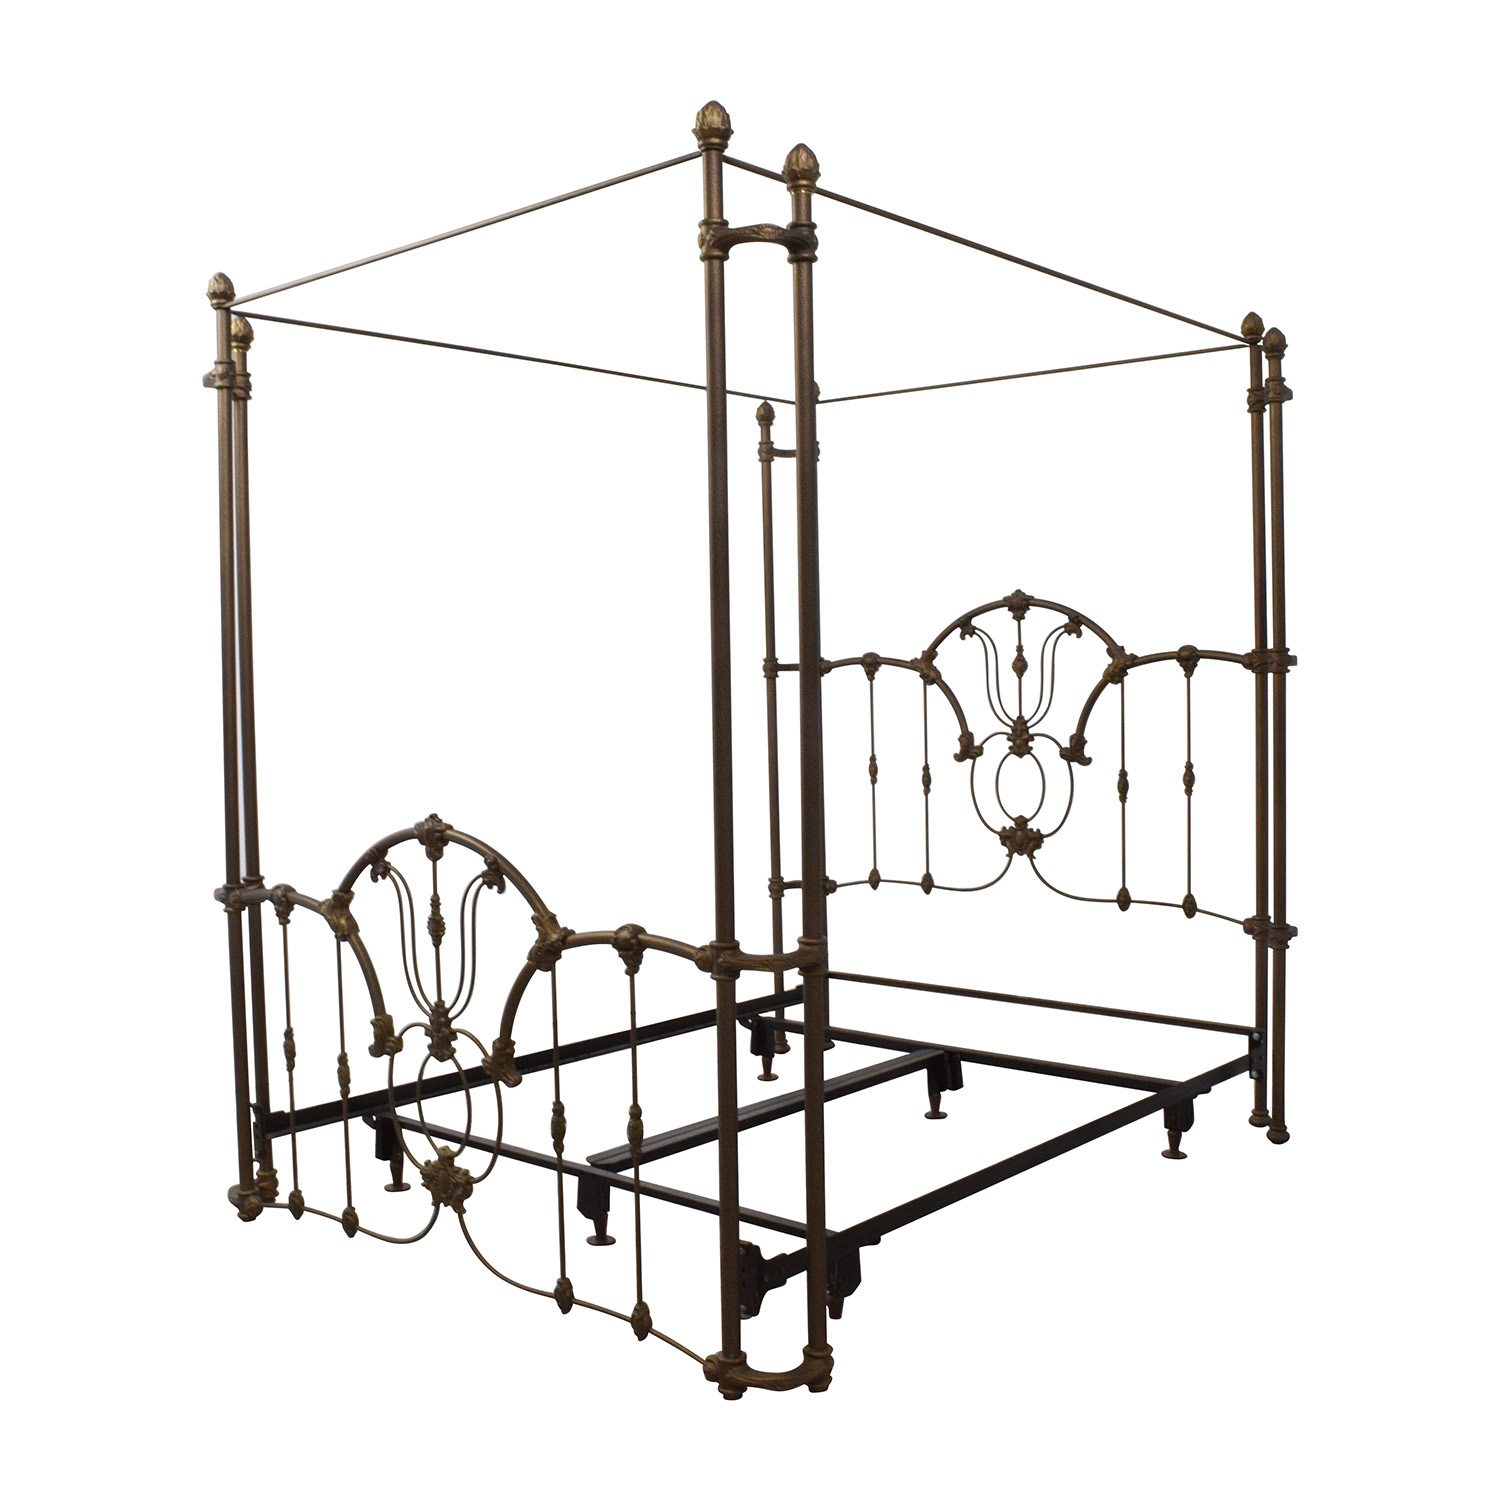 60 off bronze metal canopy queen bed frame beds for Brass canopy bed frame